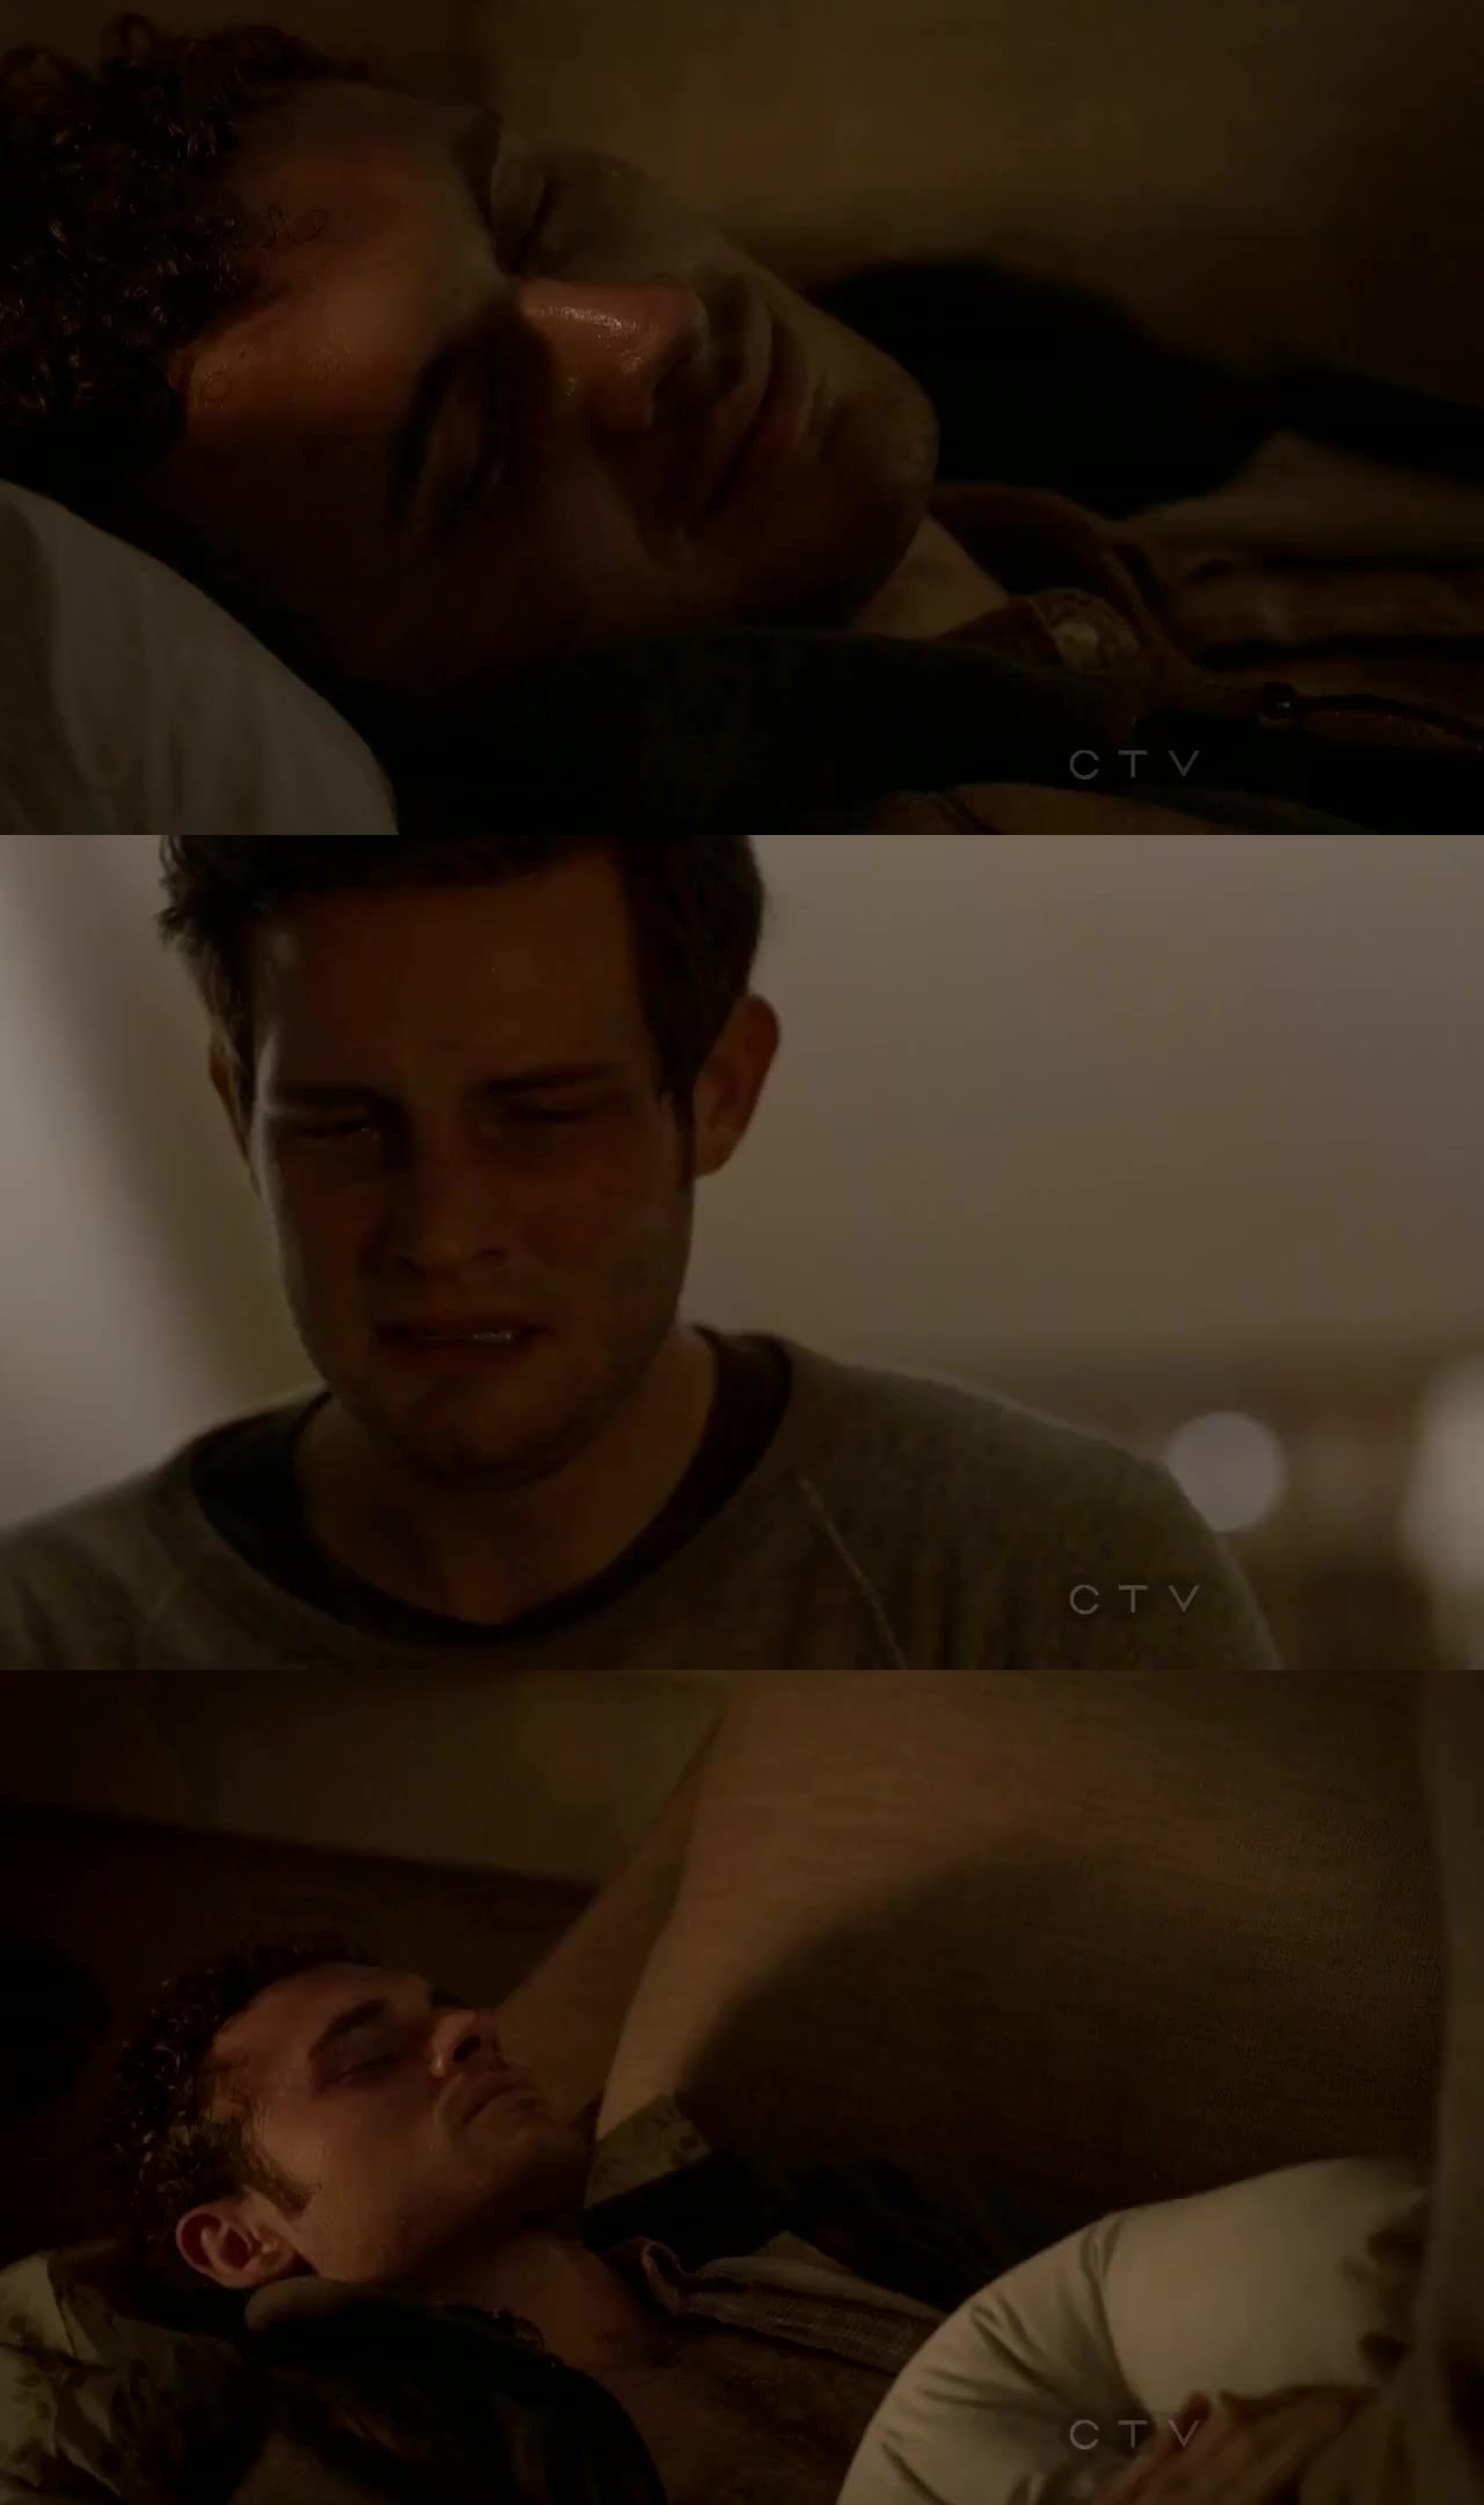 Everytime that I watch this scene, my heart suffers.